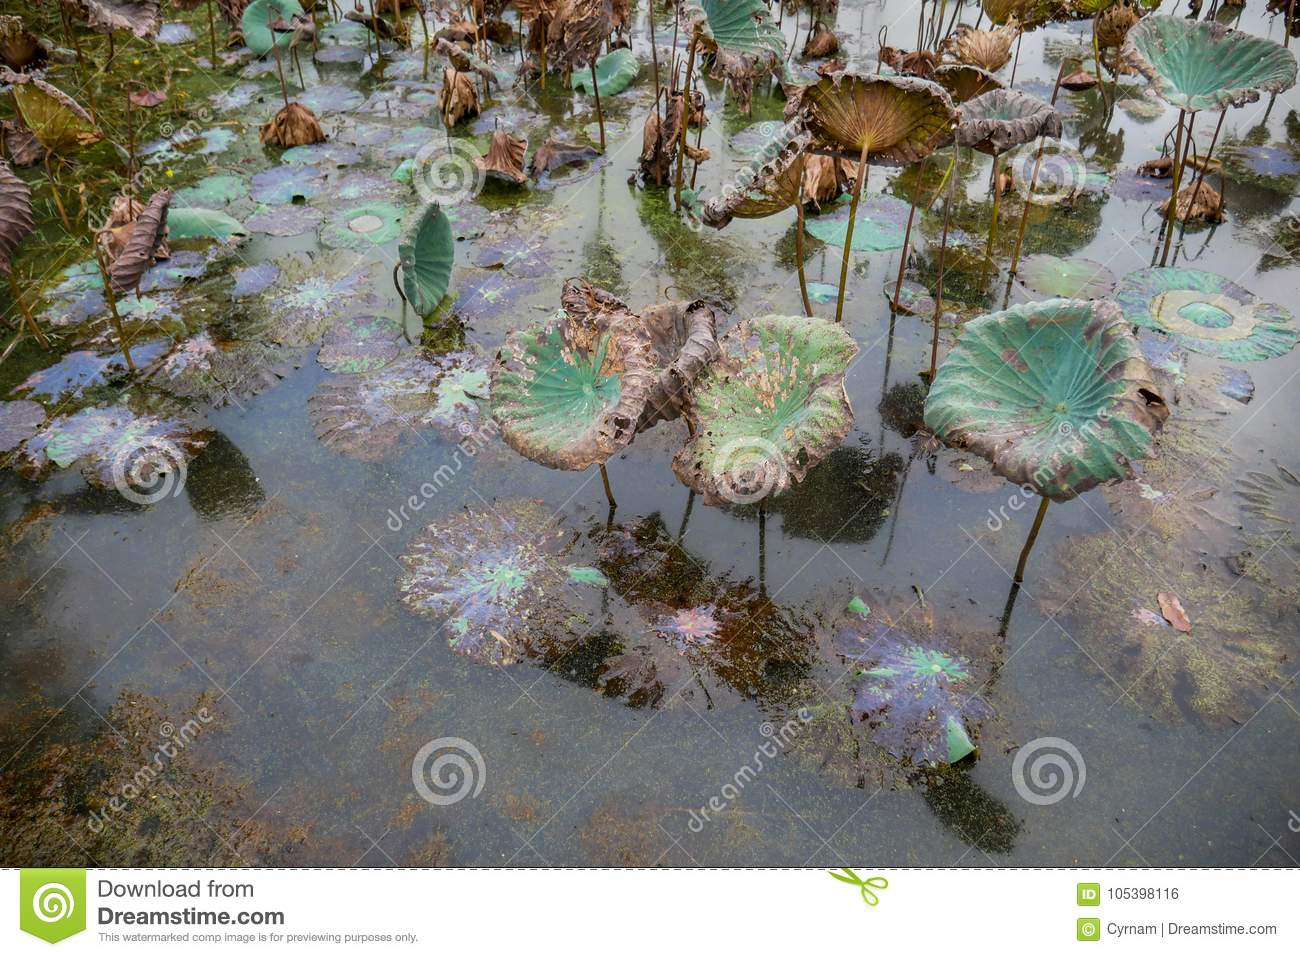 Waterlily pond dry and dead water lilies dead lotus flower download waterlily pond dry and dead water lilies dead lotus flower beautiful colored izmirmasajfo